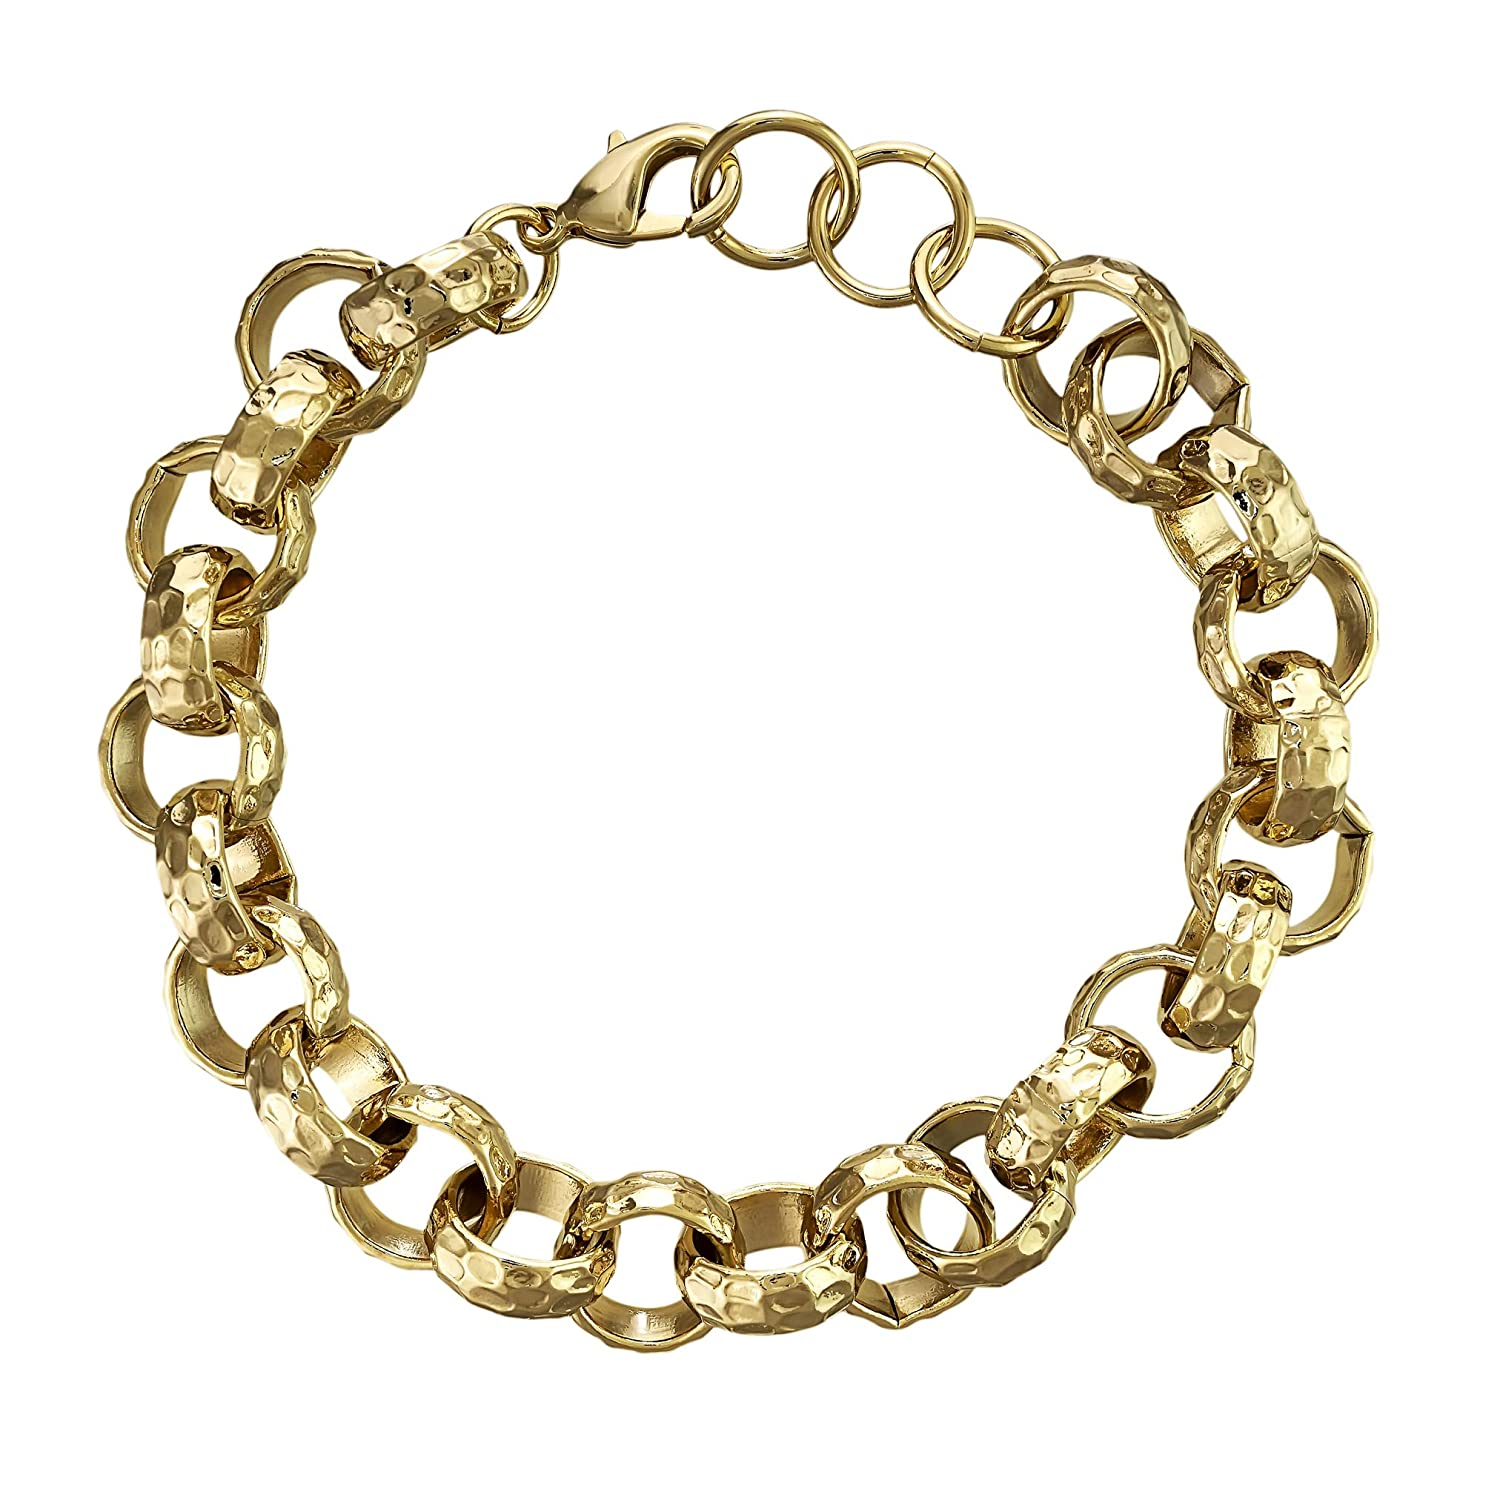 9ct YELLOW GOLD CHAIN END 7mm JEWELLERY MAKING